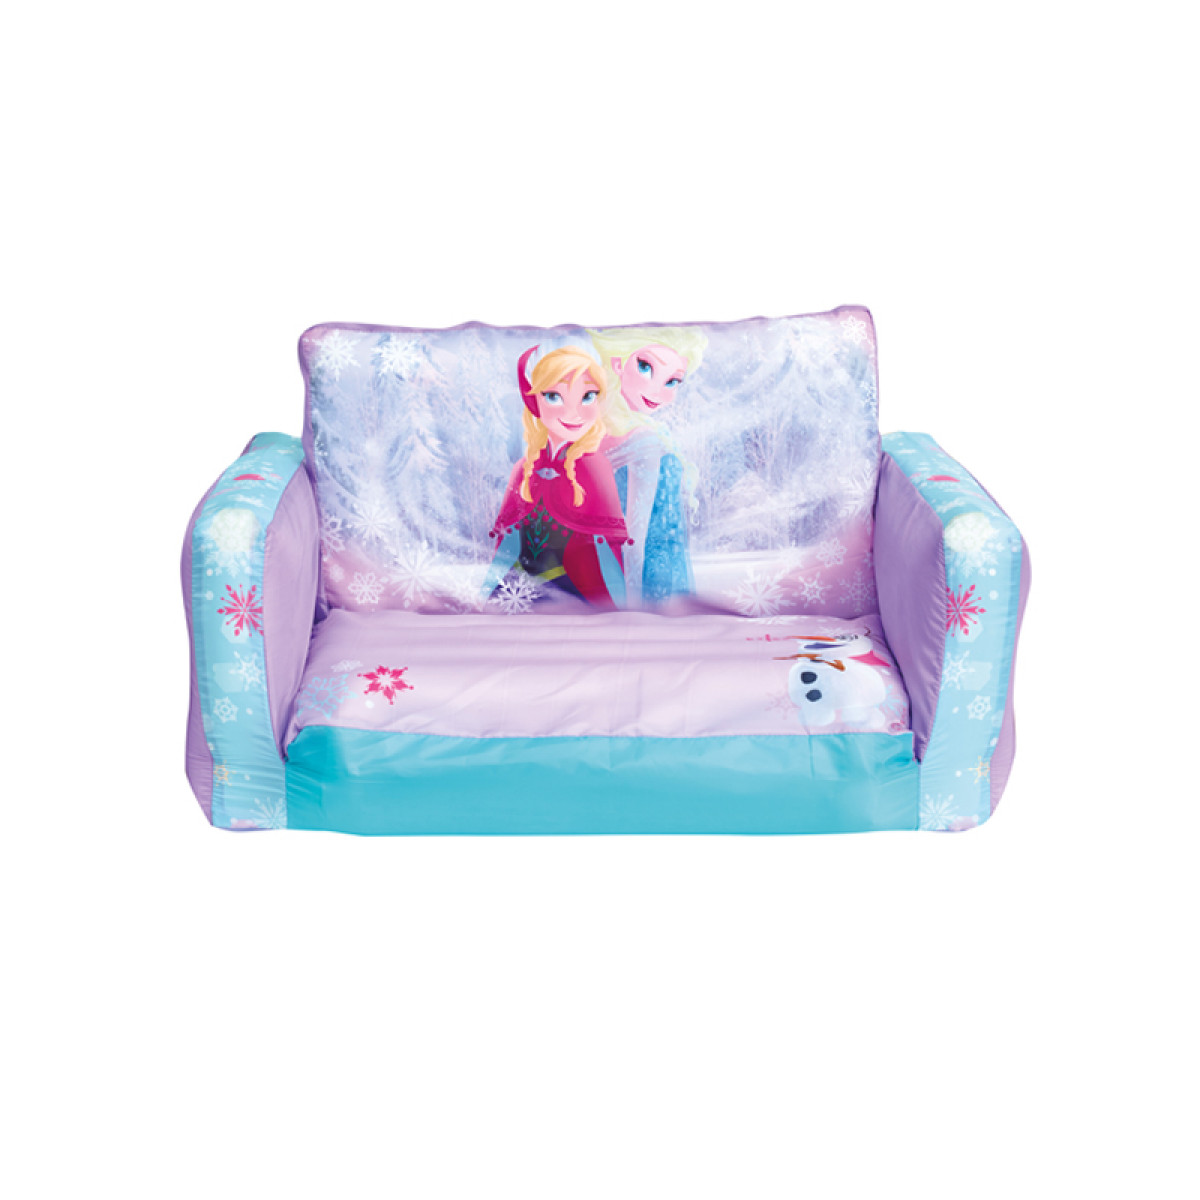 disney princess flip out sofa with slumber bag large pillows for frozen bedroom